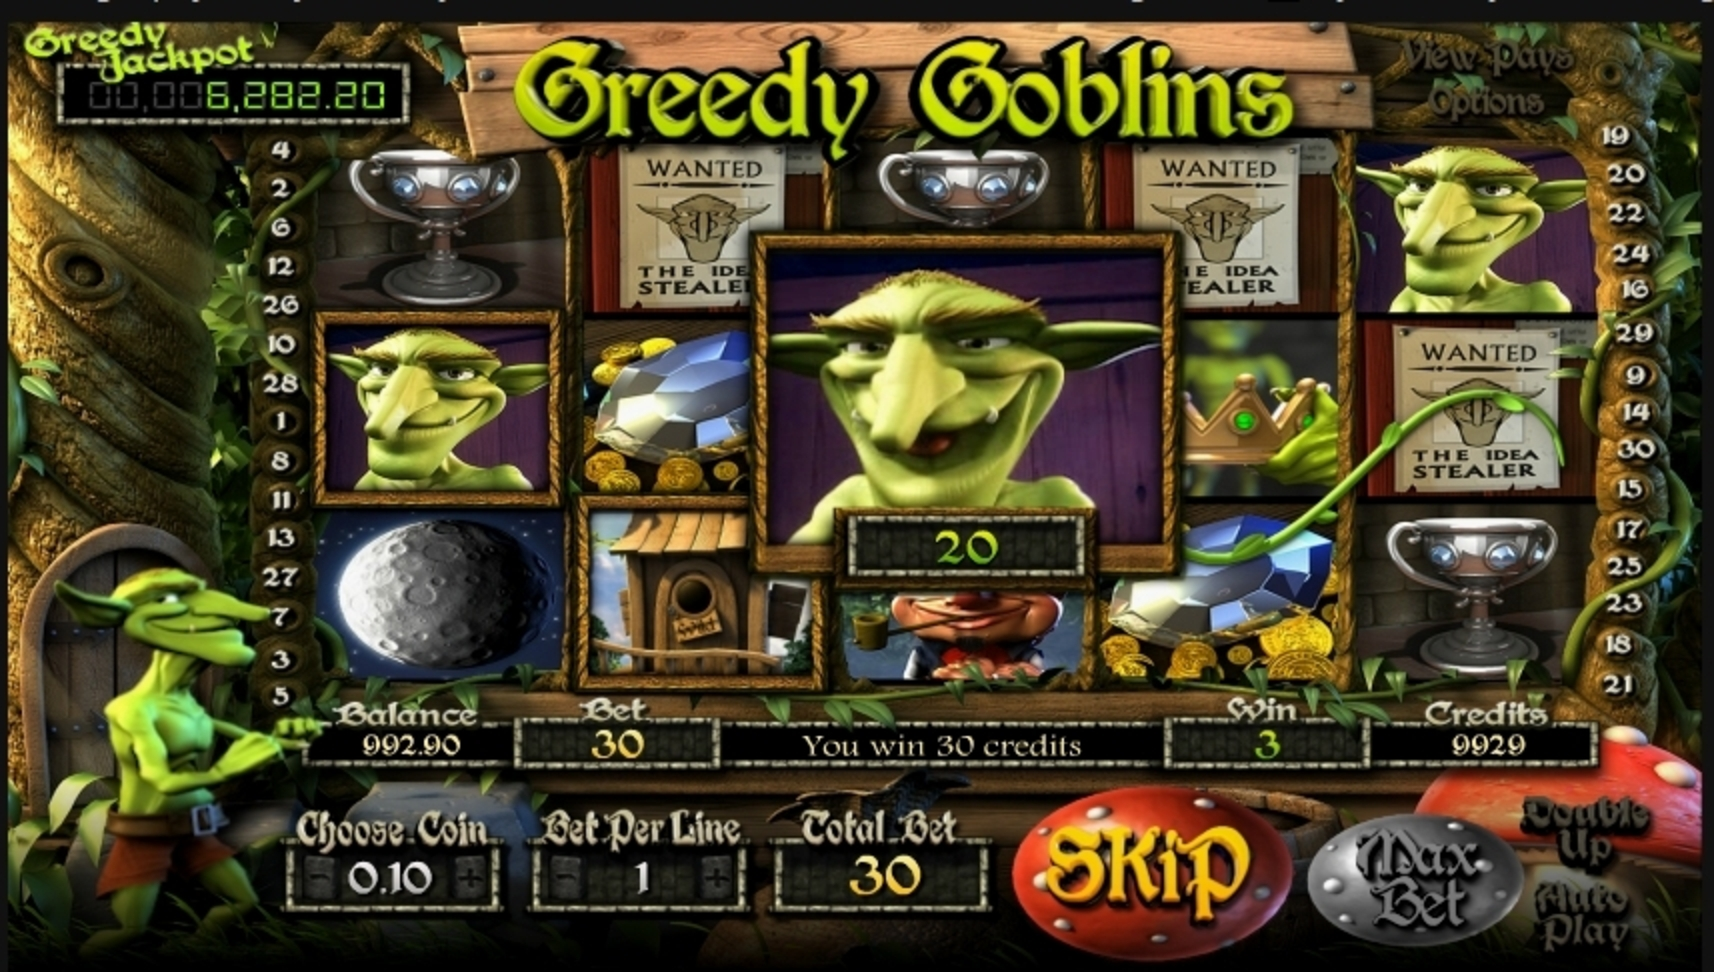 Win Money in Greedy Goblins Free Slot Game by Betsoft